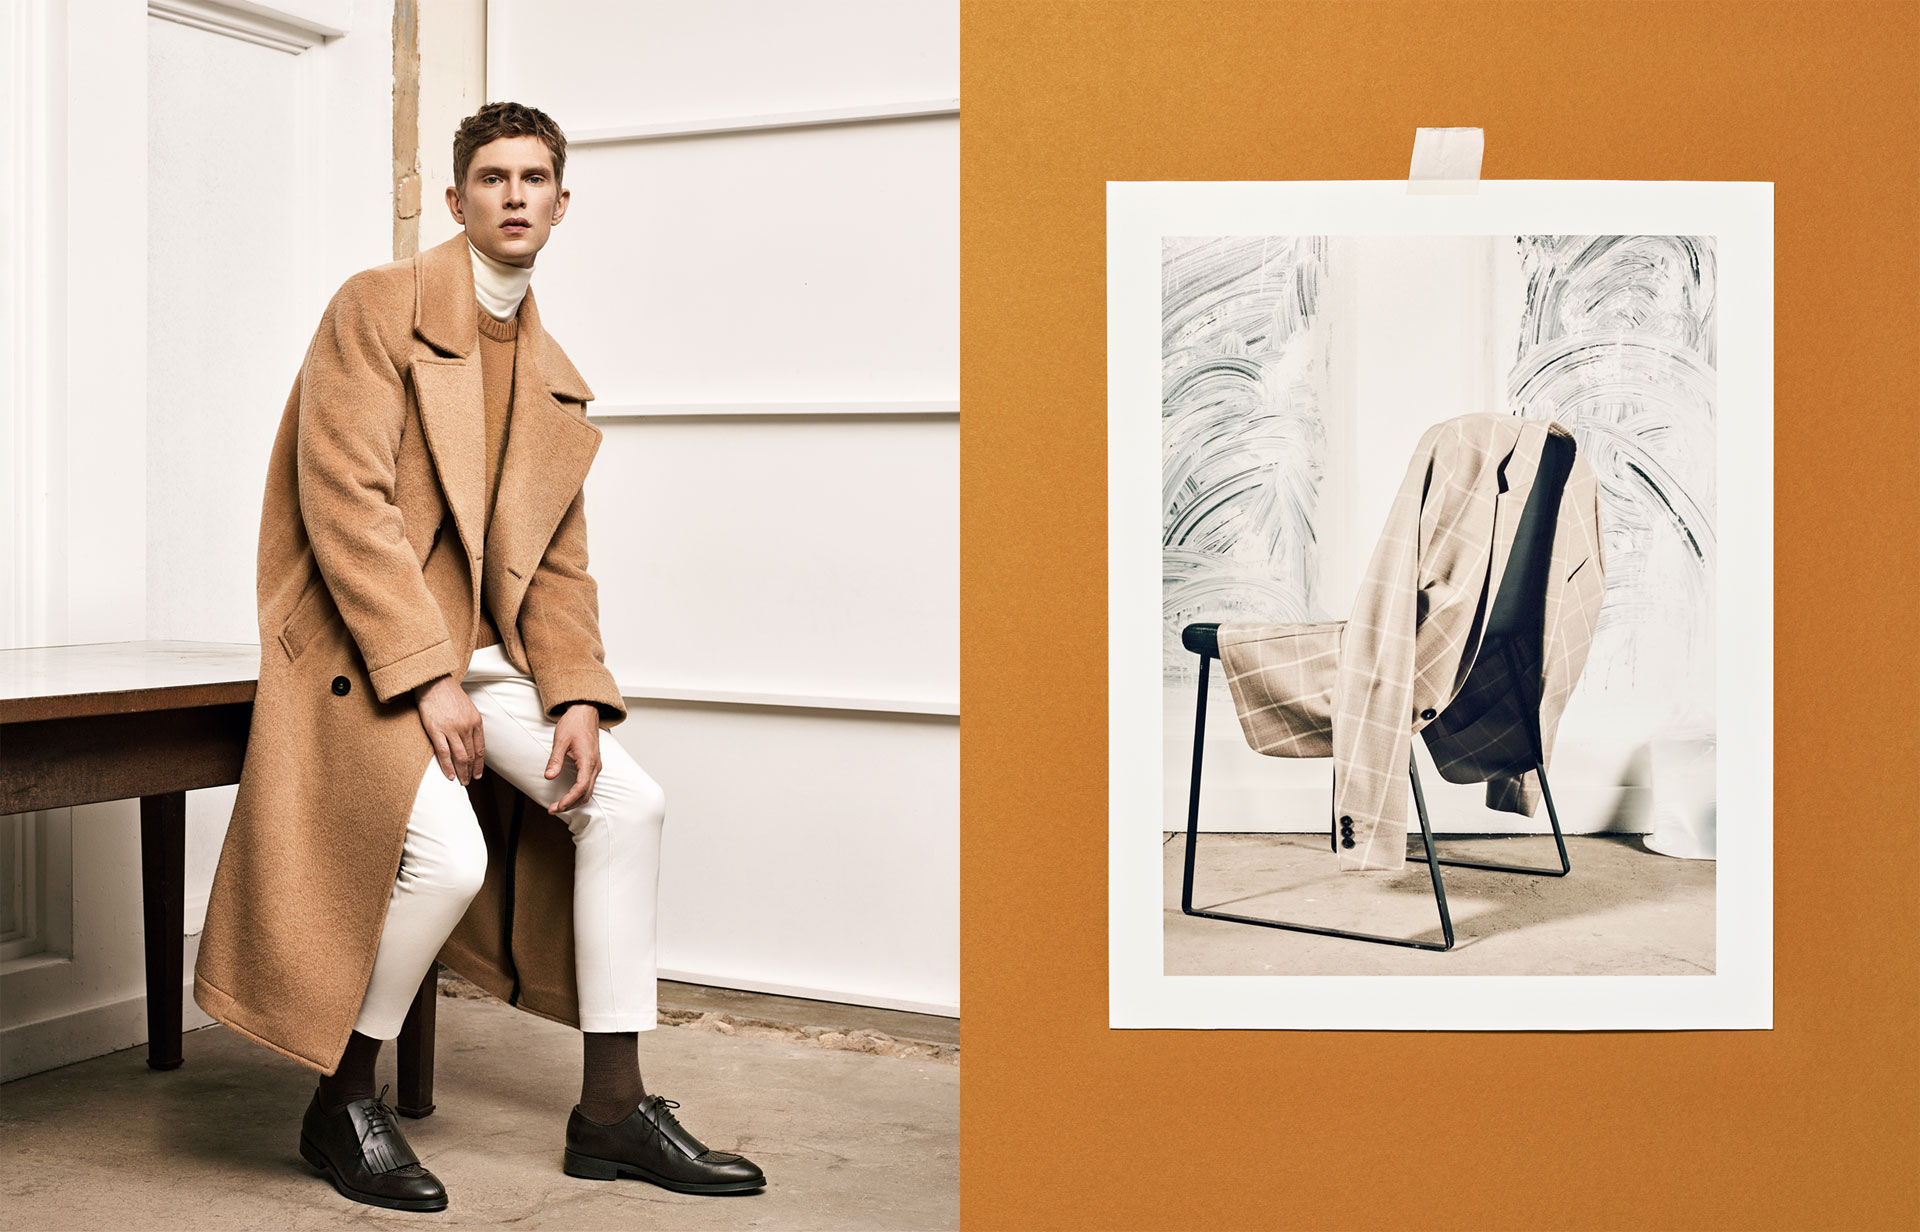 Studio overcoat , £159  Studio sweater , £59.99  Studio turtle neck sweater , £45.99  Studio trousers , £29.99  Studio suit , £99.99  Studio brown leather fringed shoes , £79.99